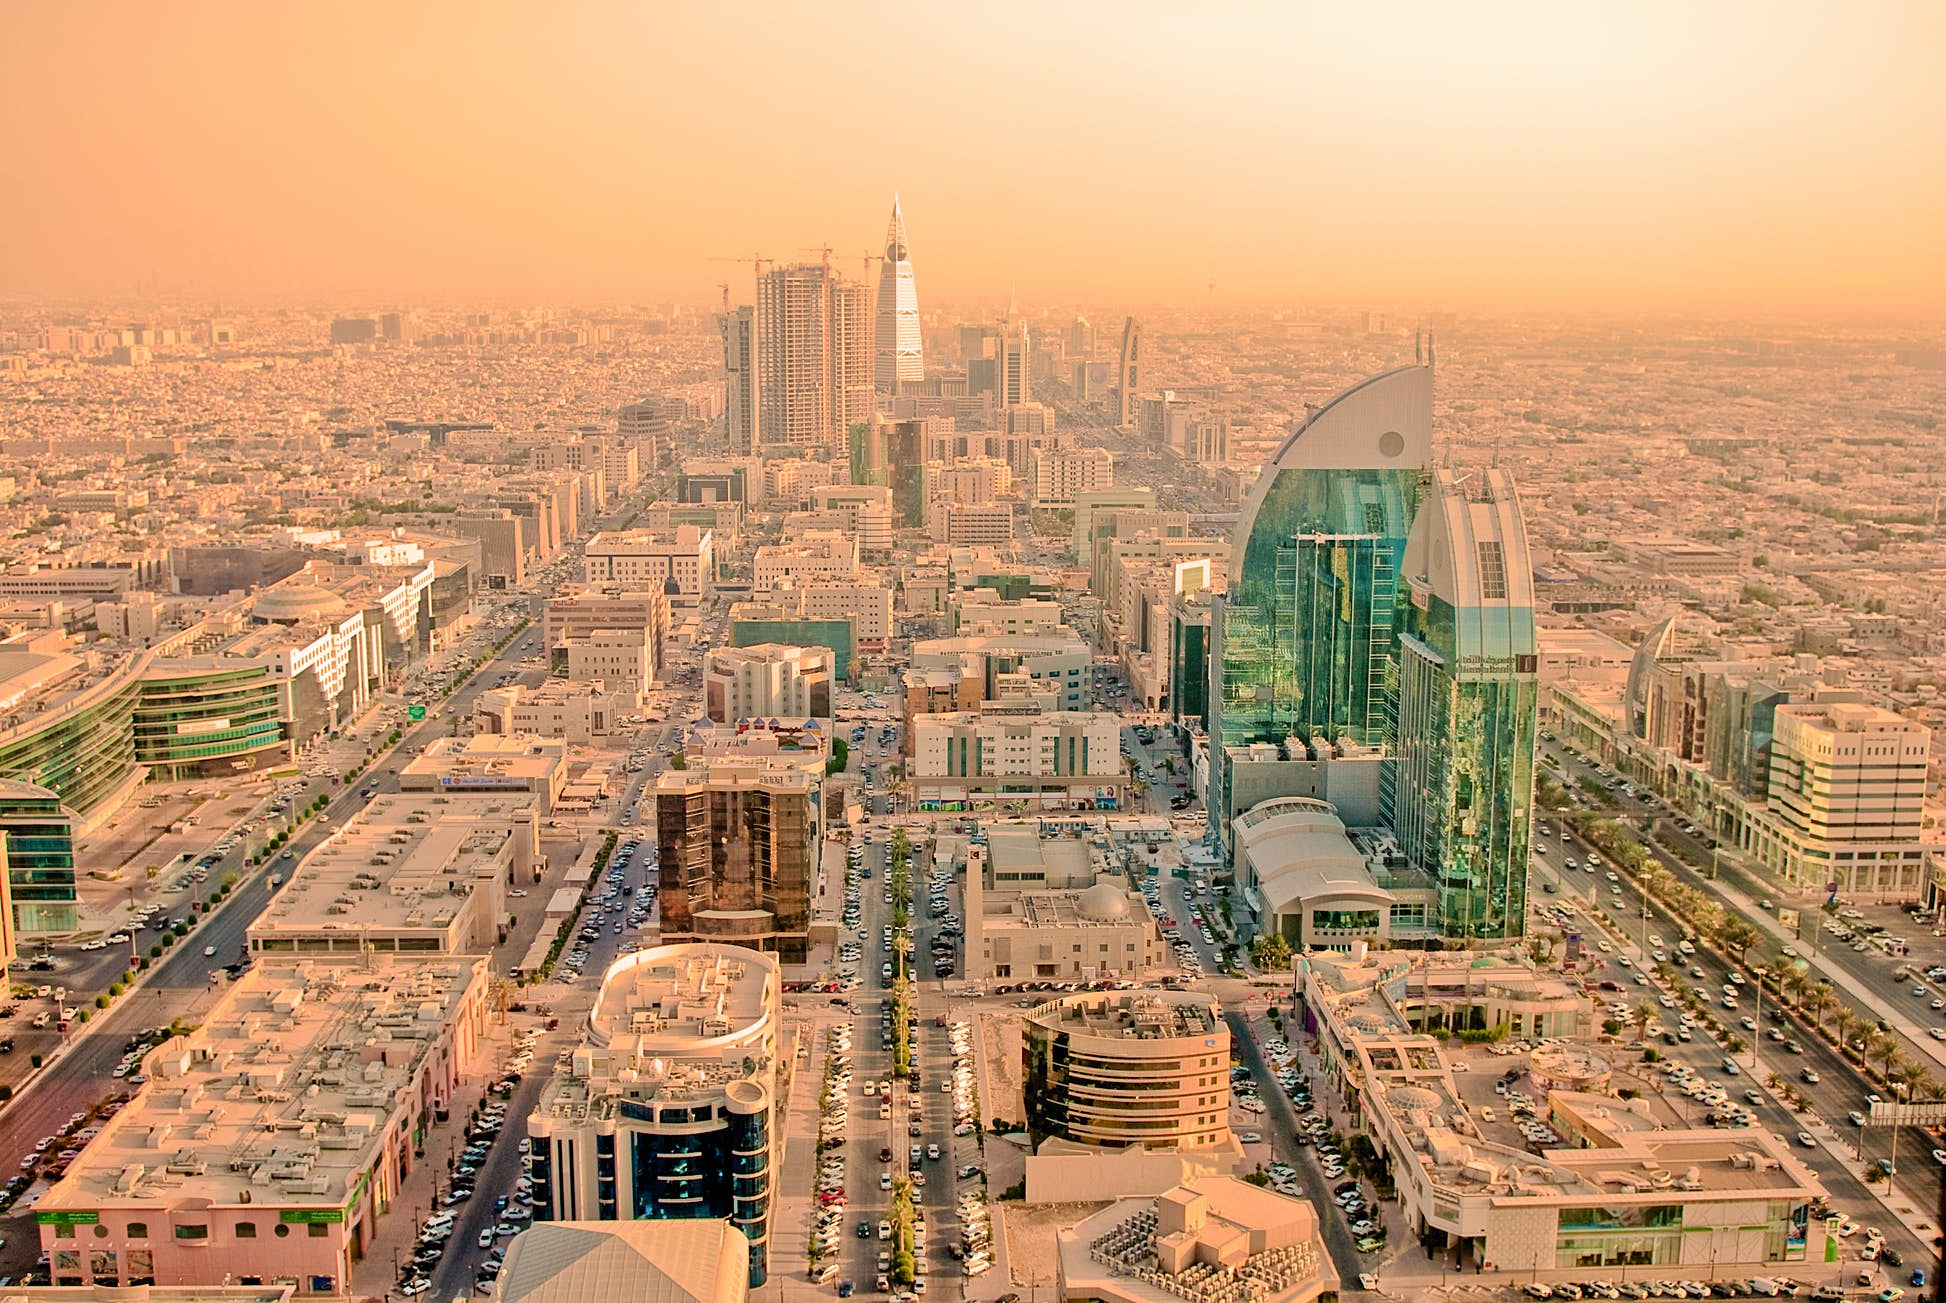 Several locations have already joined the initiative, like the country of Saudi Arabia © Qasim Mirza / 500px